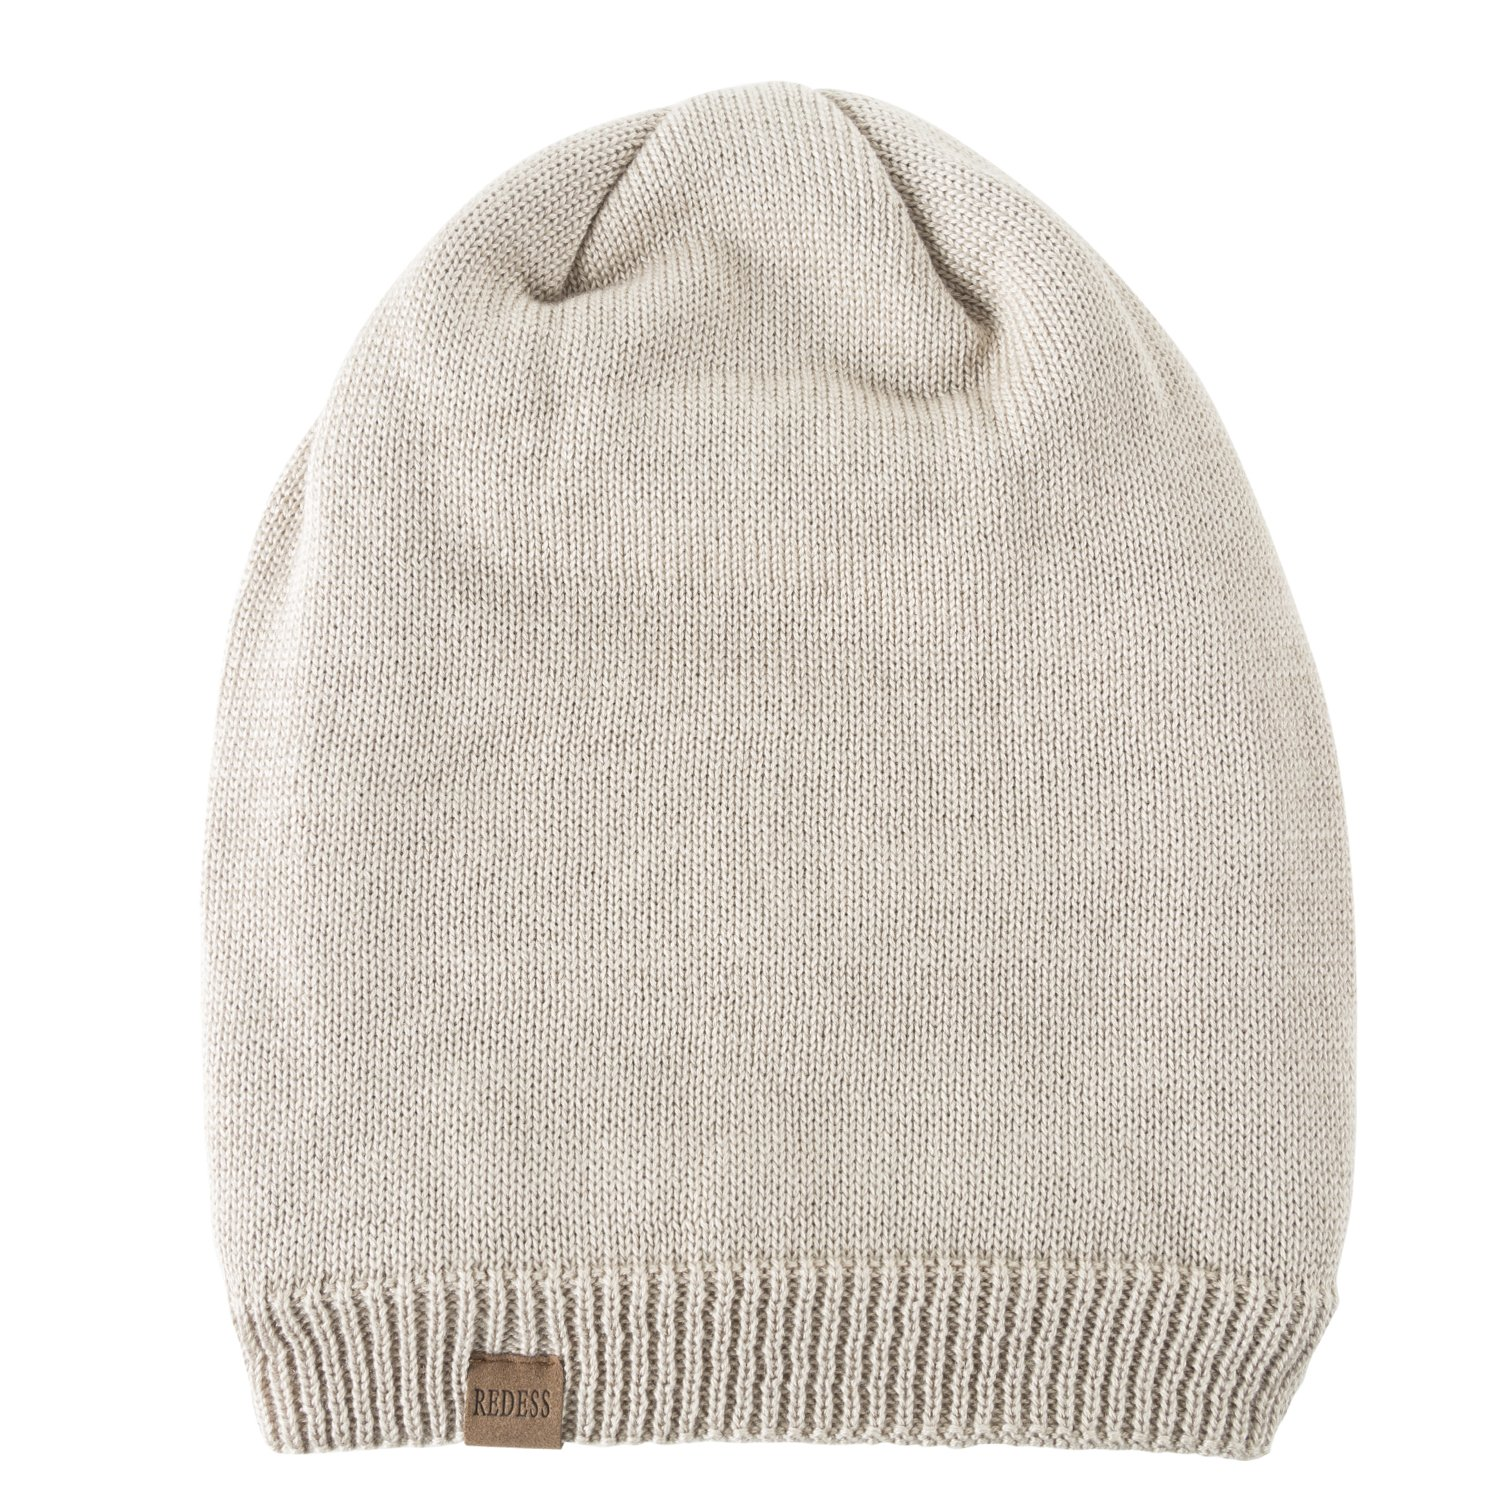 1cac2935102 REDESS Slouchy Long Oversized Beanie Hat Women Men